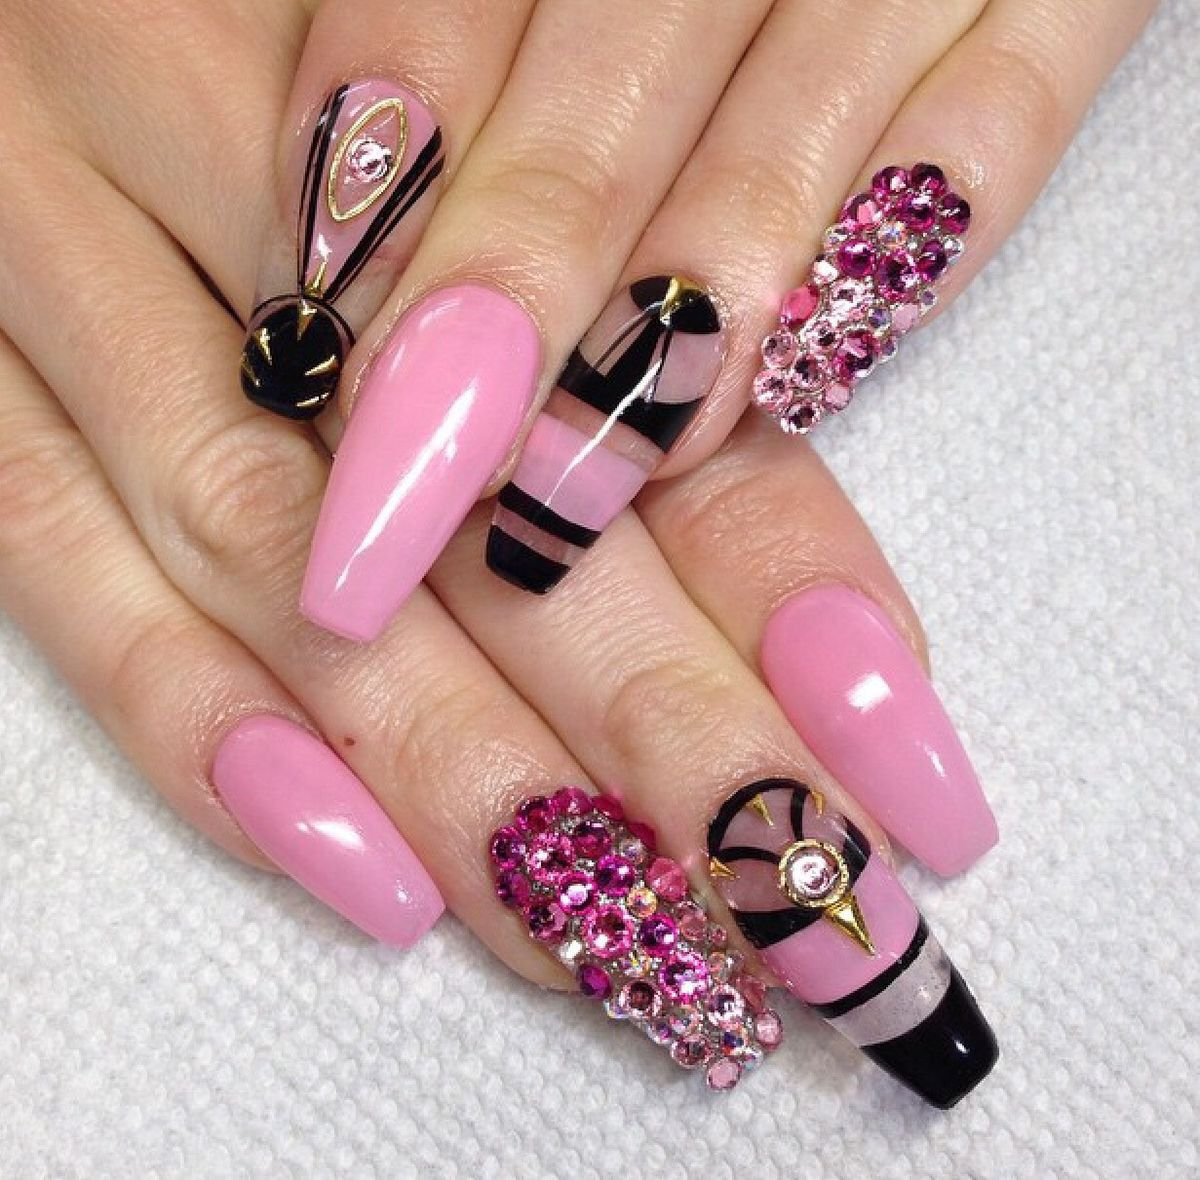 Pin by jessica tom on Nails | Pinterest | Nail nail